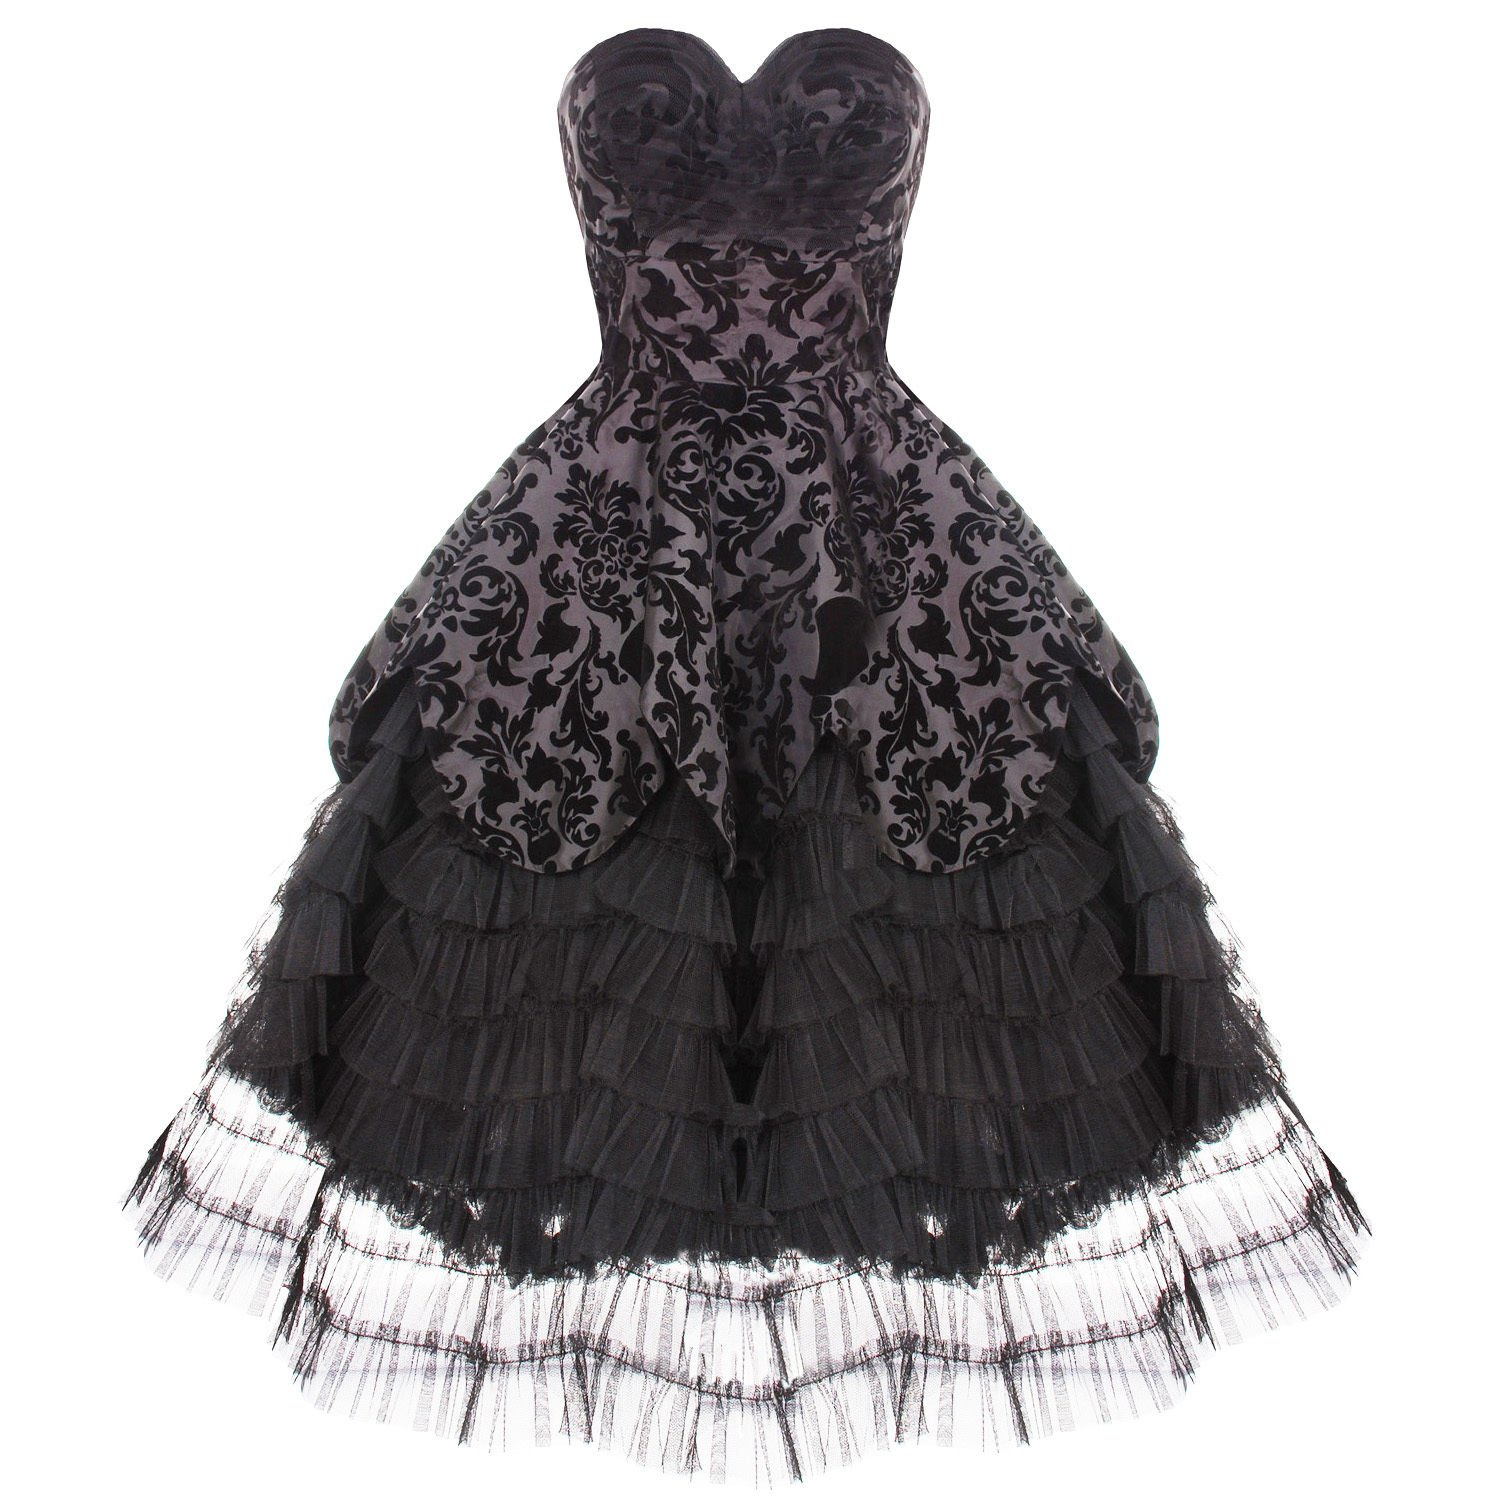 HELL BUNNY LAVINTAGE BLACK GOTH VICTORIAN STEAMPUNK MOURNING WEDDING DRESS WiTH EXCLUSIVE BLACKA MORE CARD